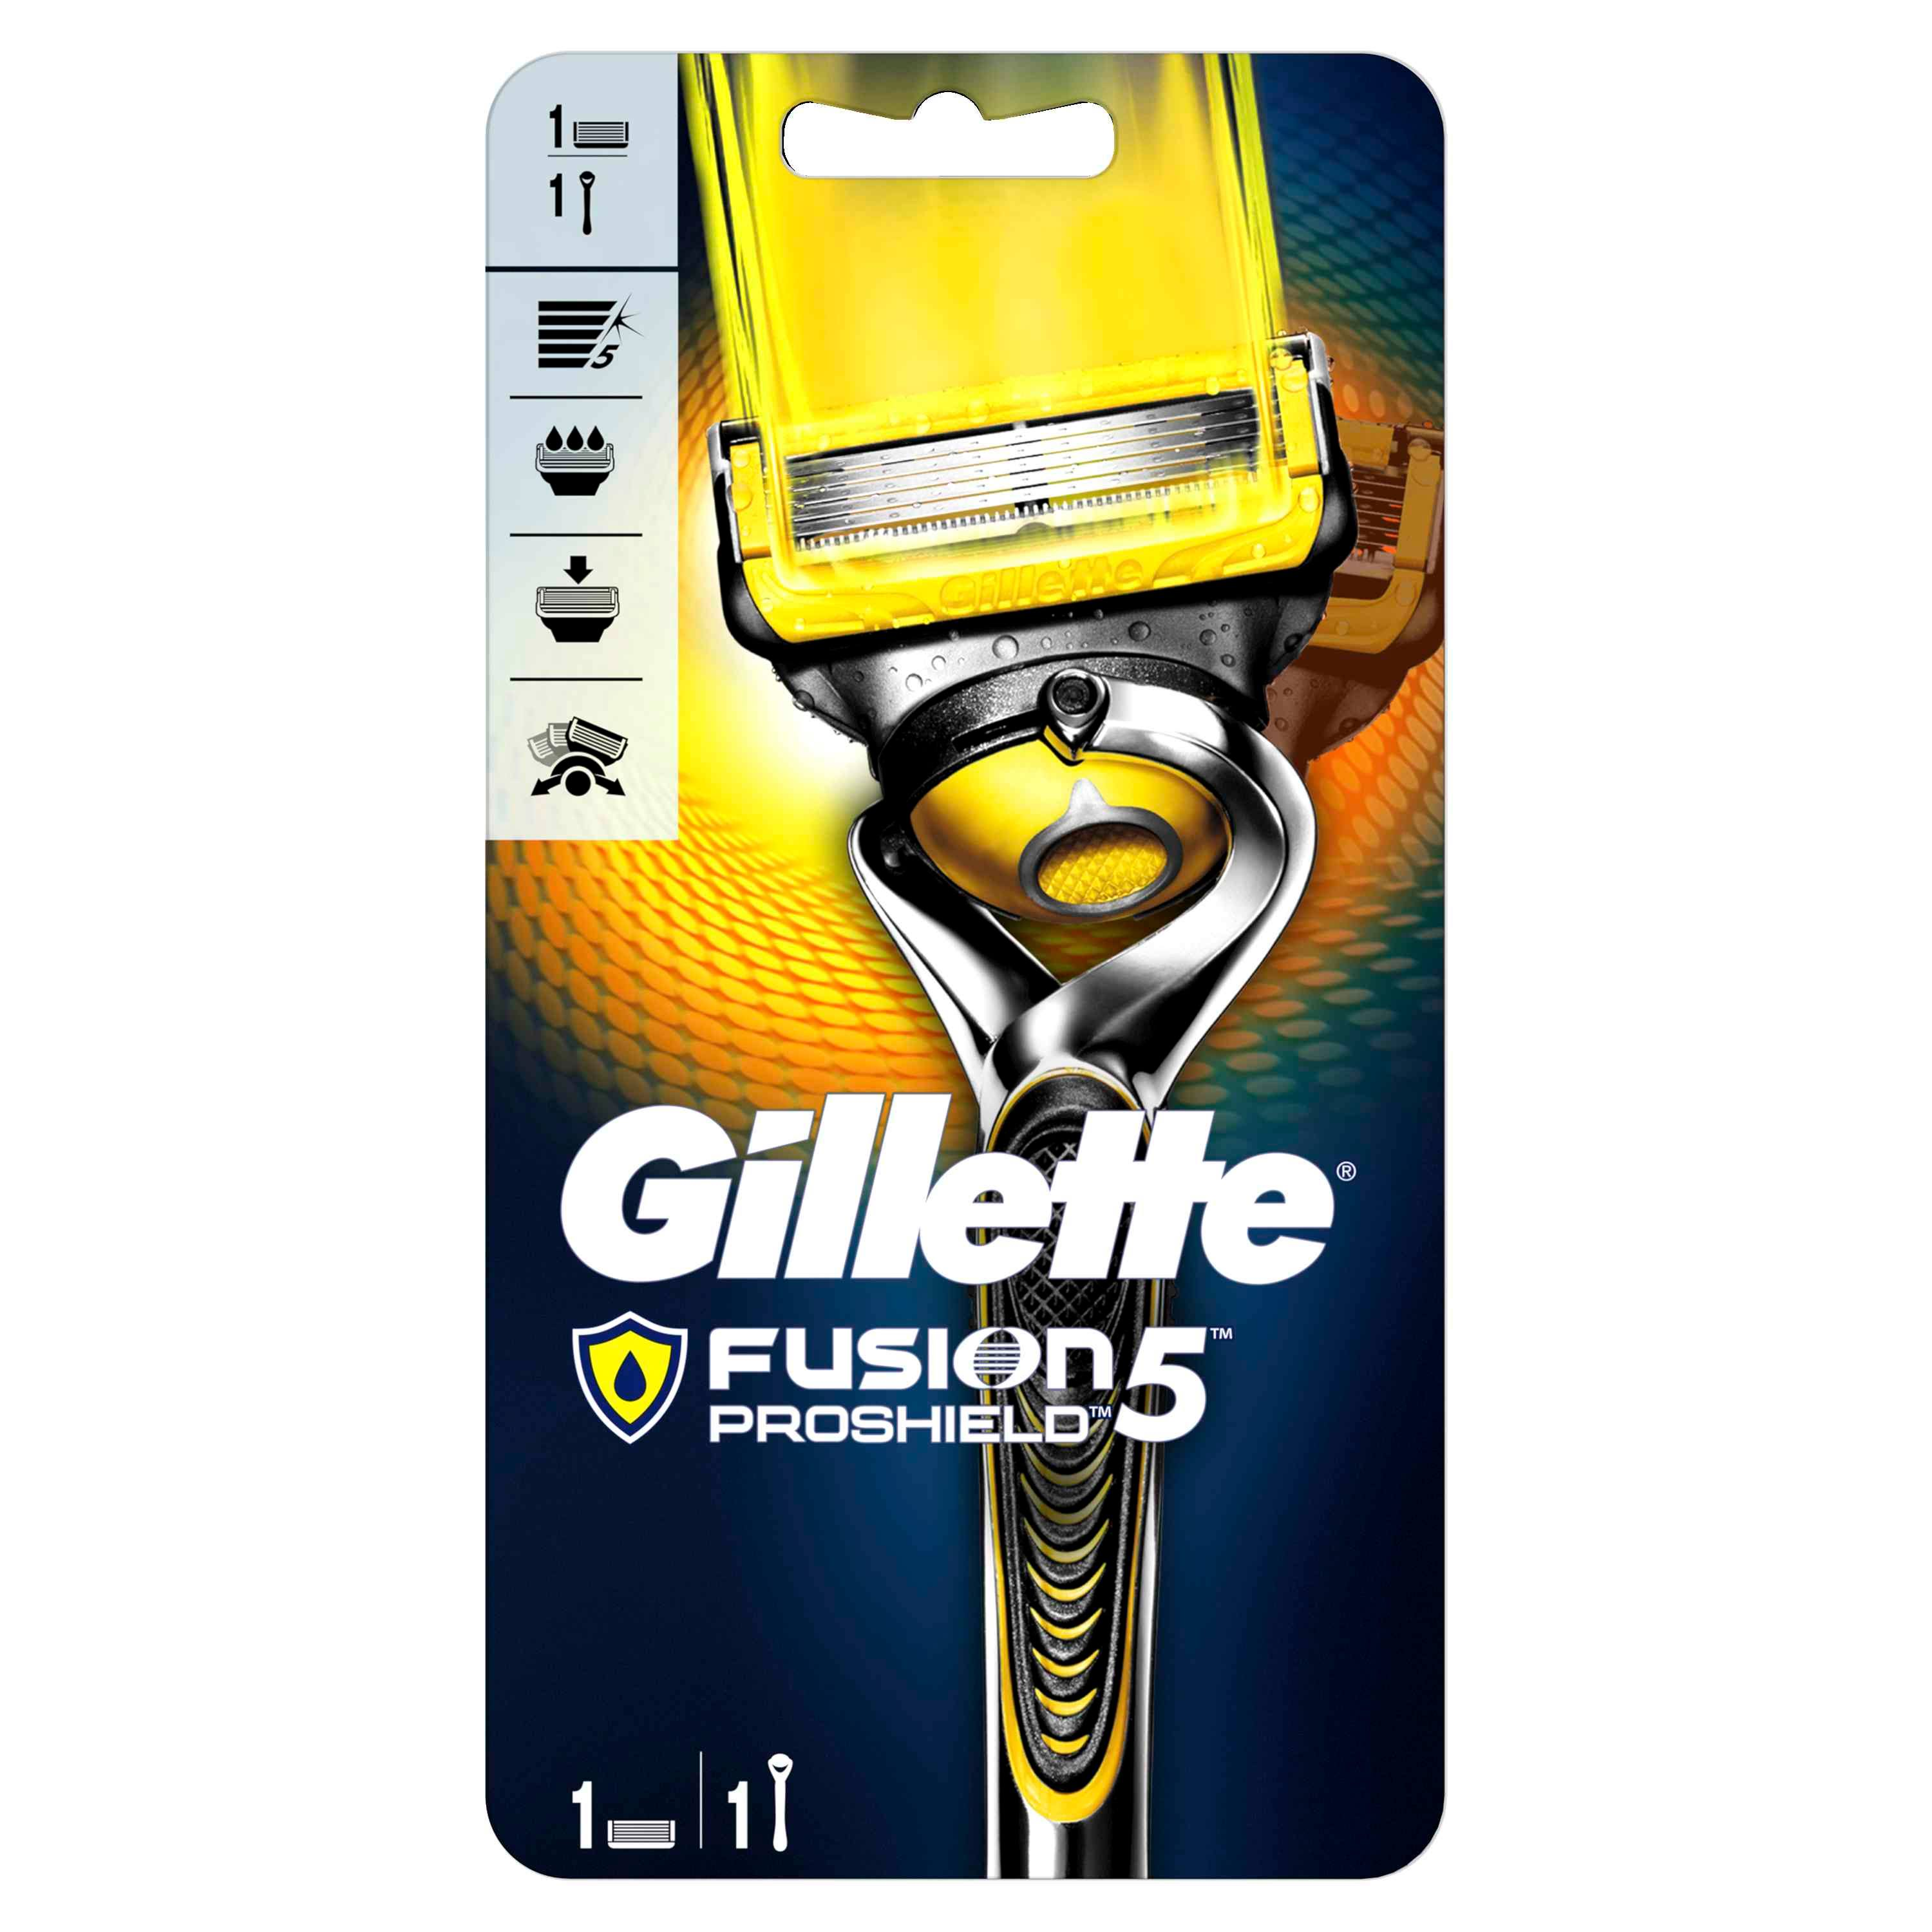 Gillette Mens Fusion5 ProShield Razor